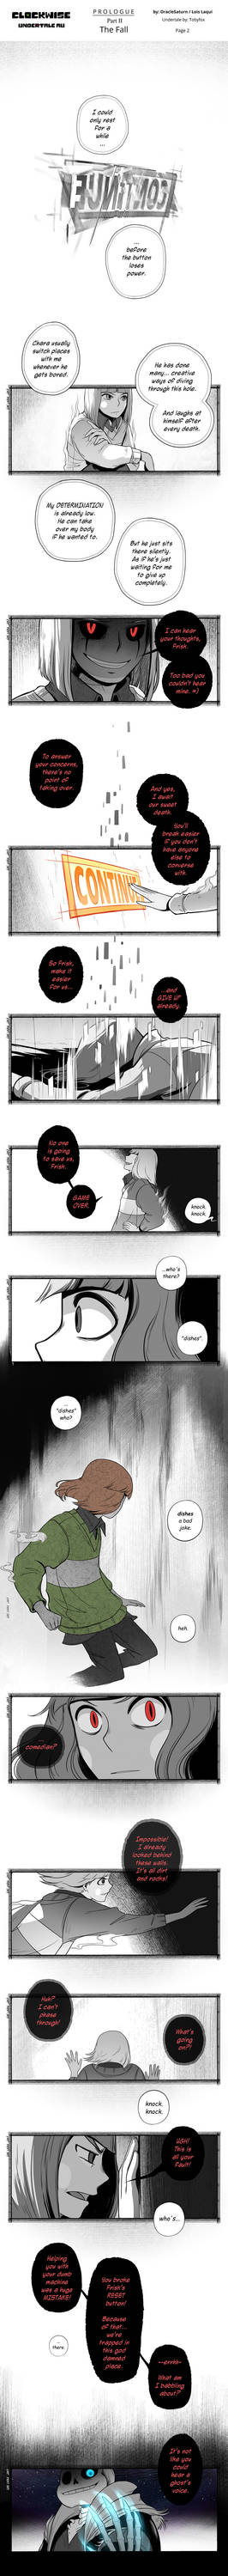 Clockwise: Prologue Part II page 2